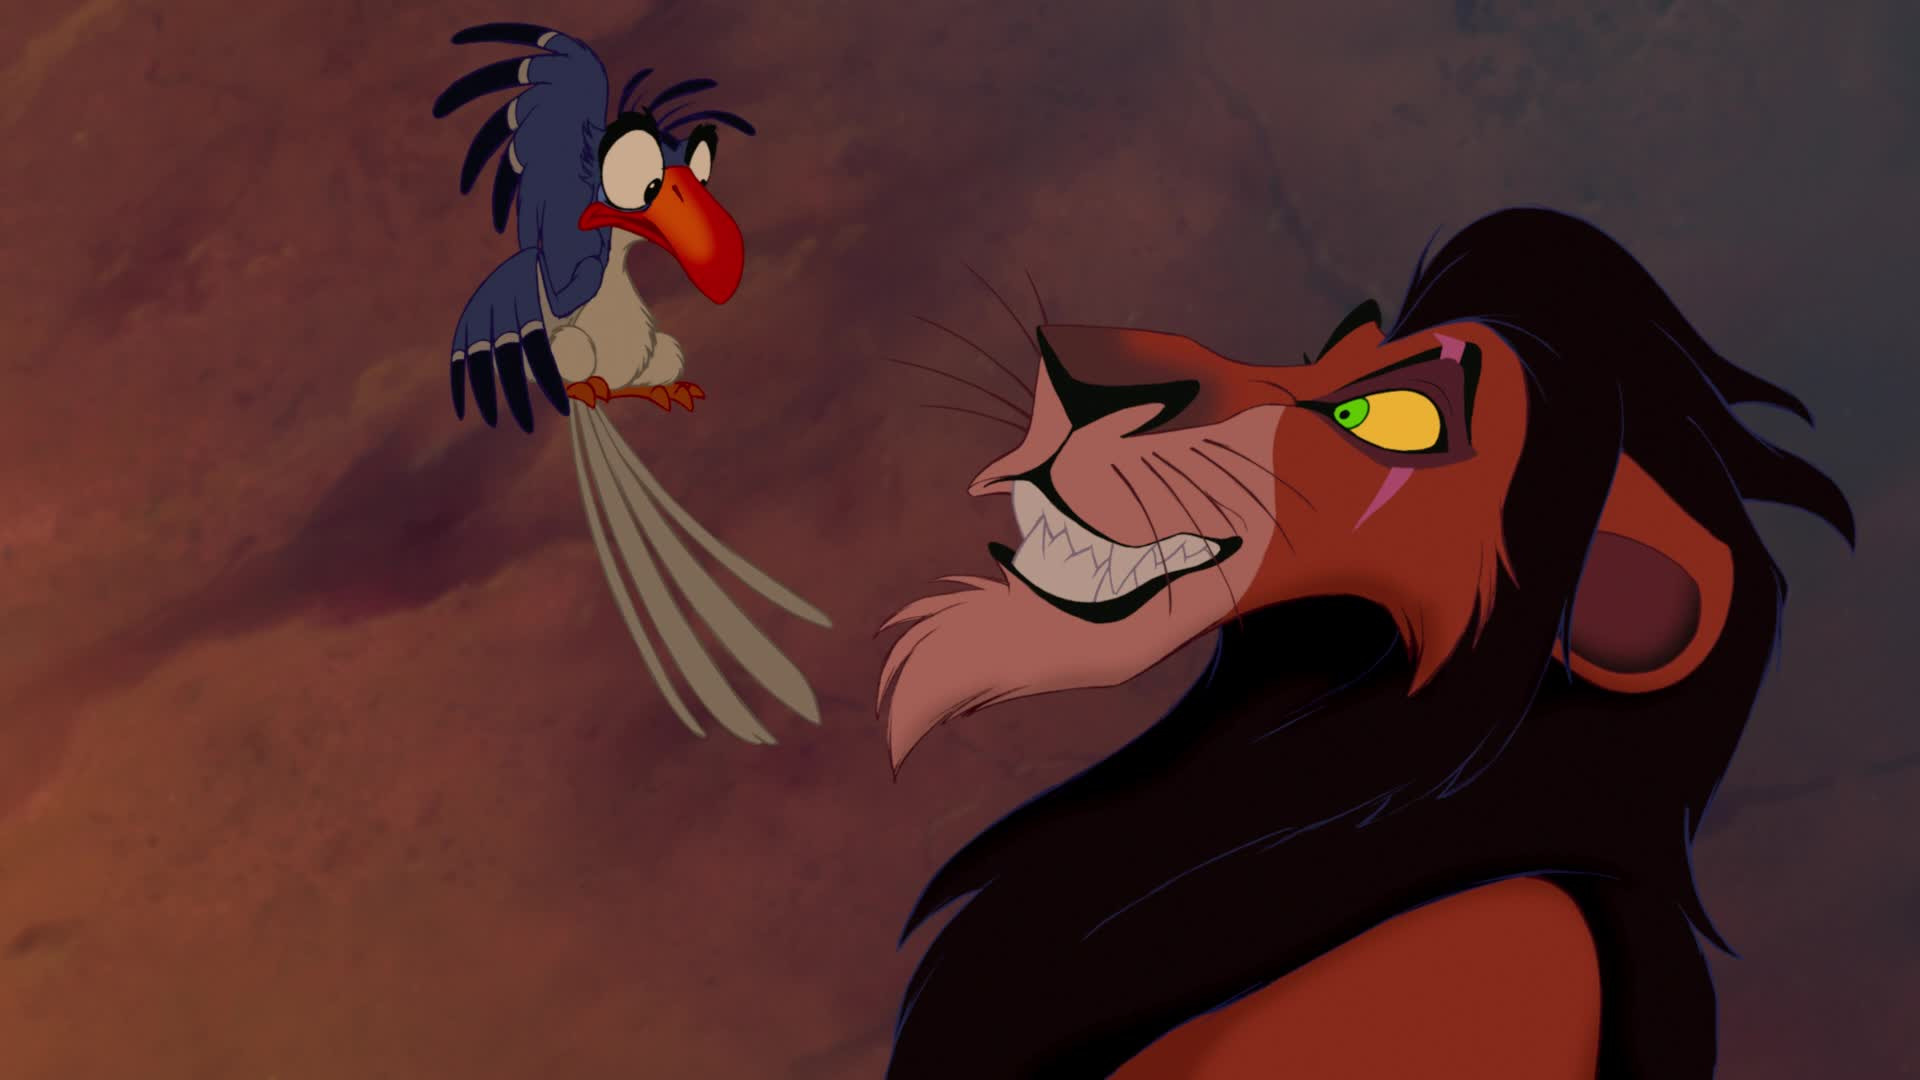 The Lion King gallery of screen